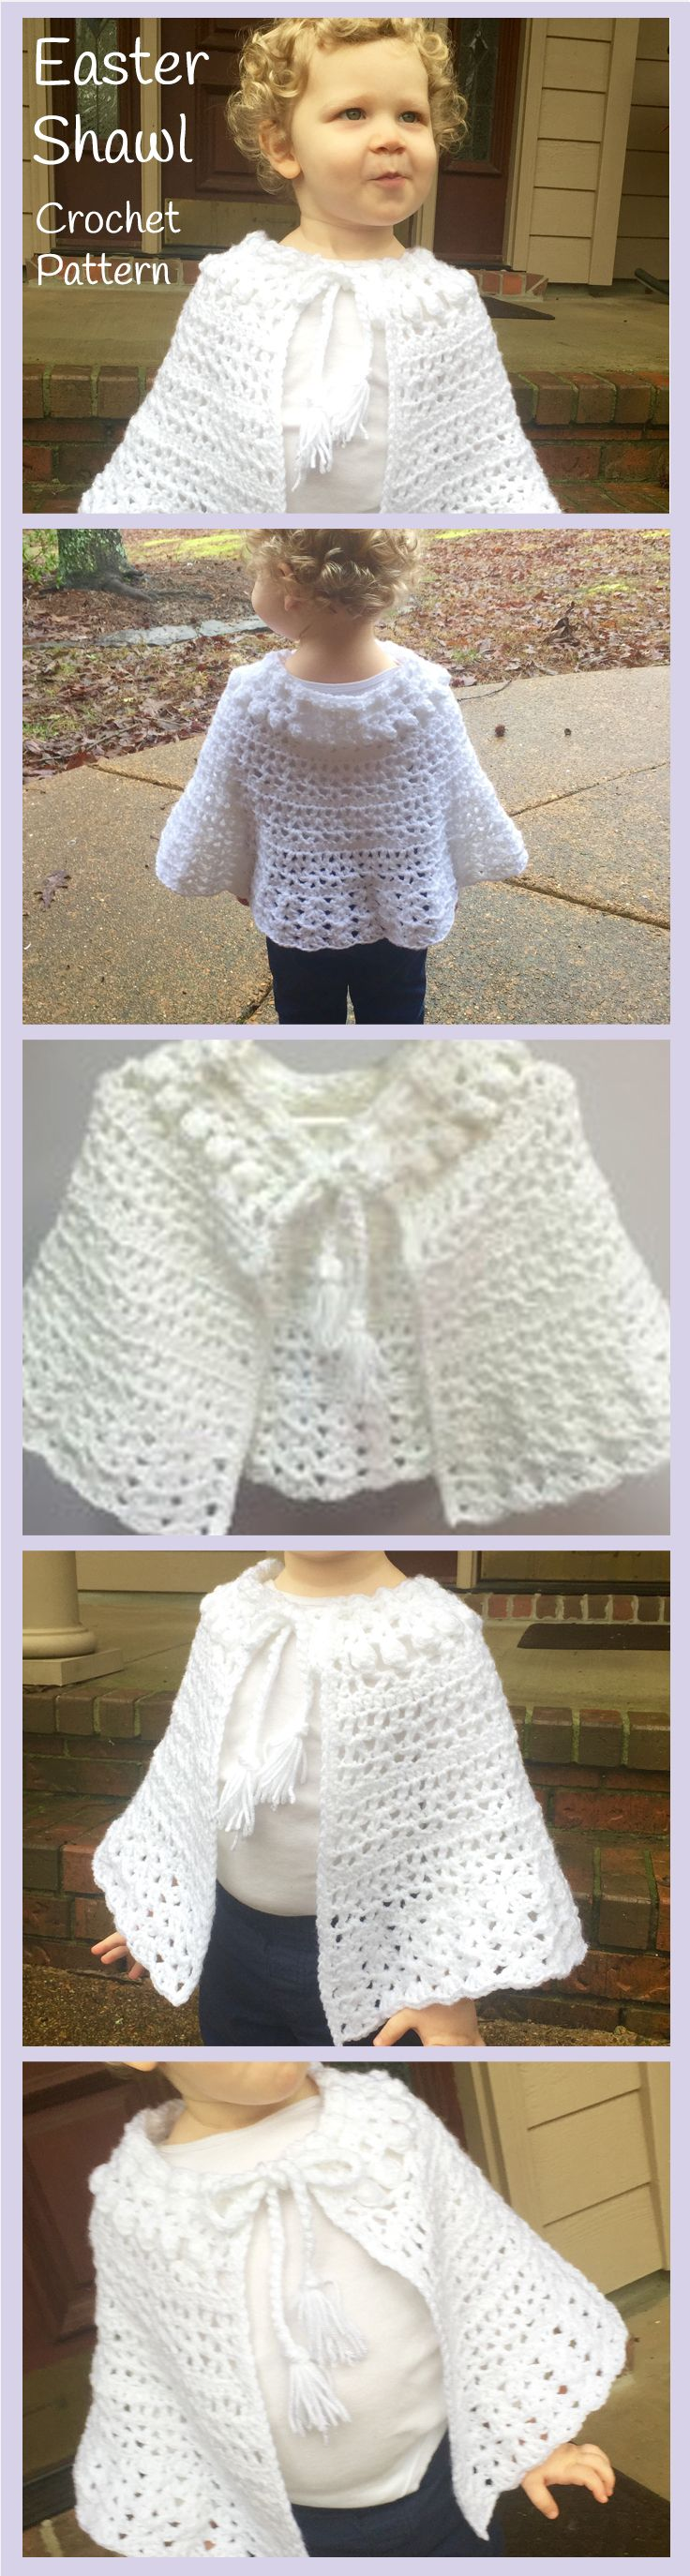 Crochet Pattern - Easter Shawl for Girls | Ponchos, Tejido y Capilla